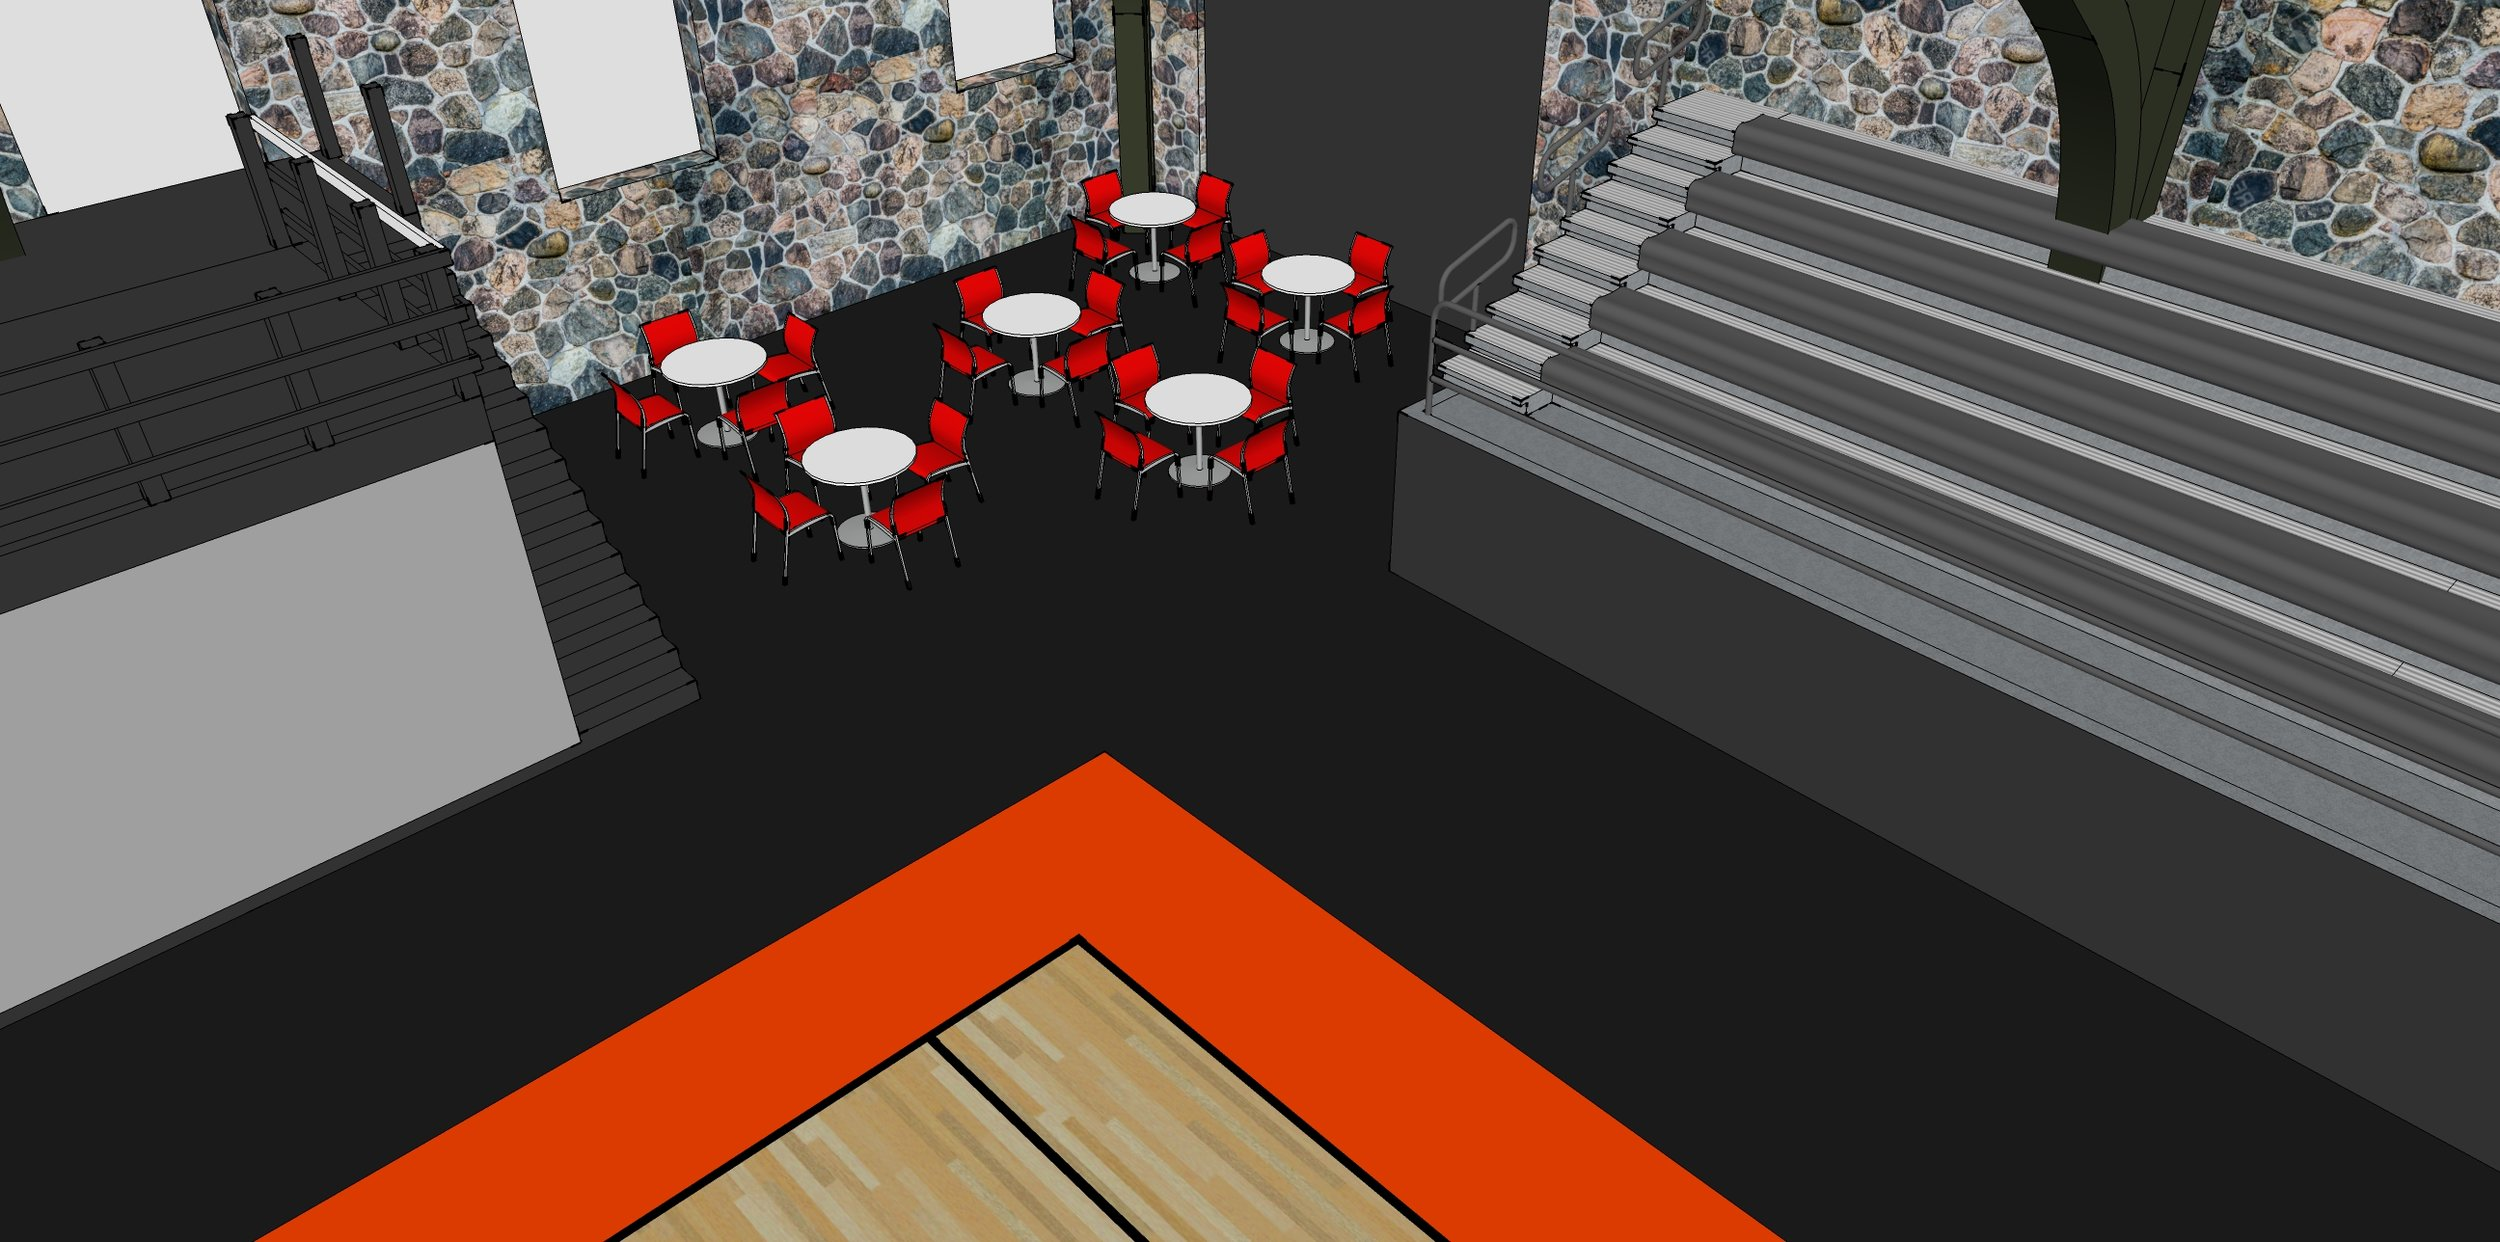 A view of the cafe seating area. The cafe will be a staple for after school hours and community events.